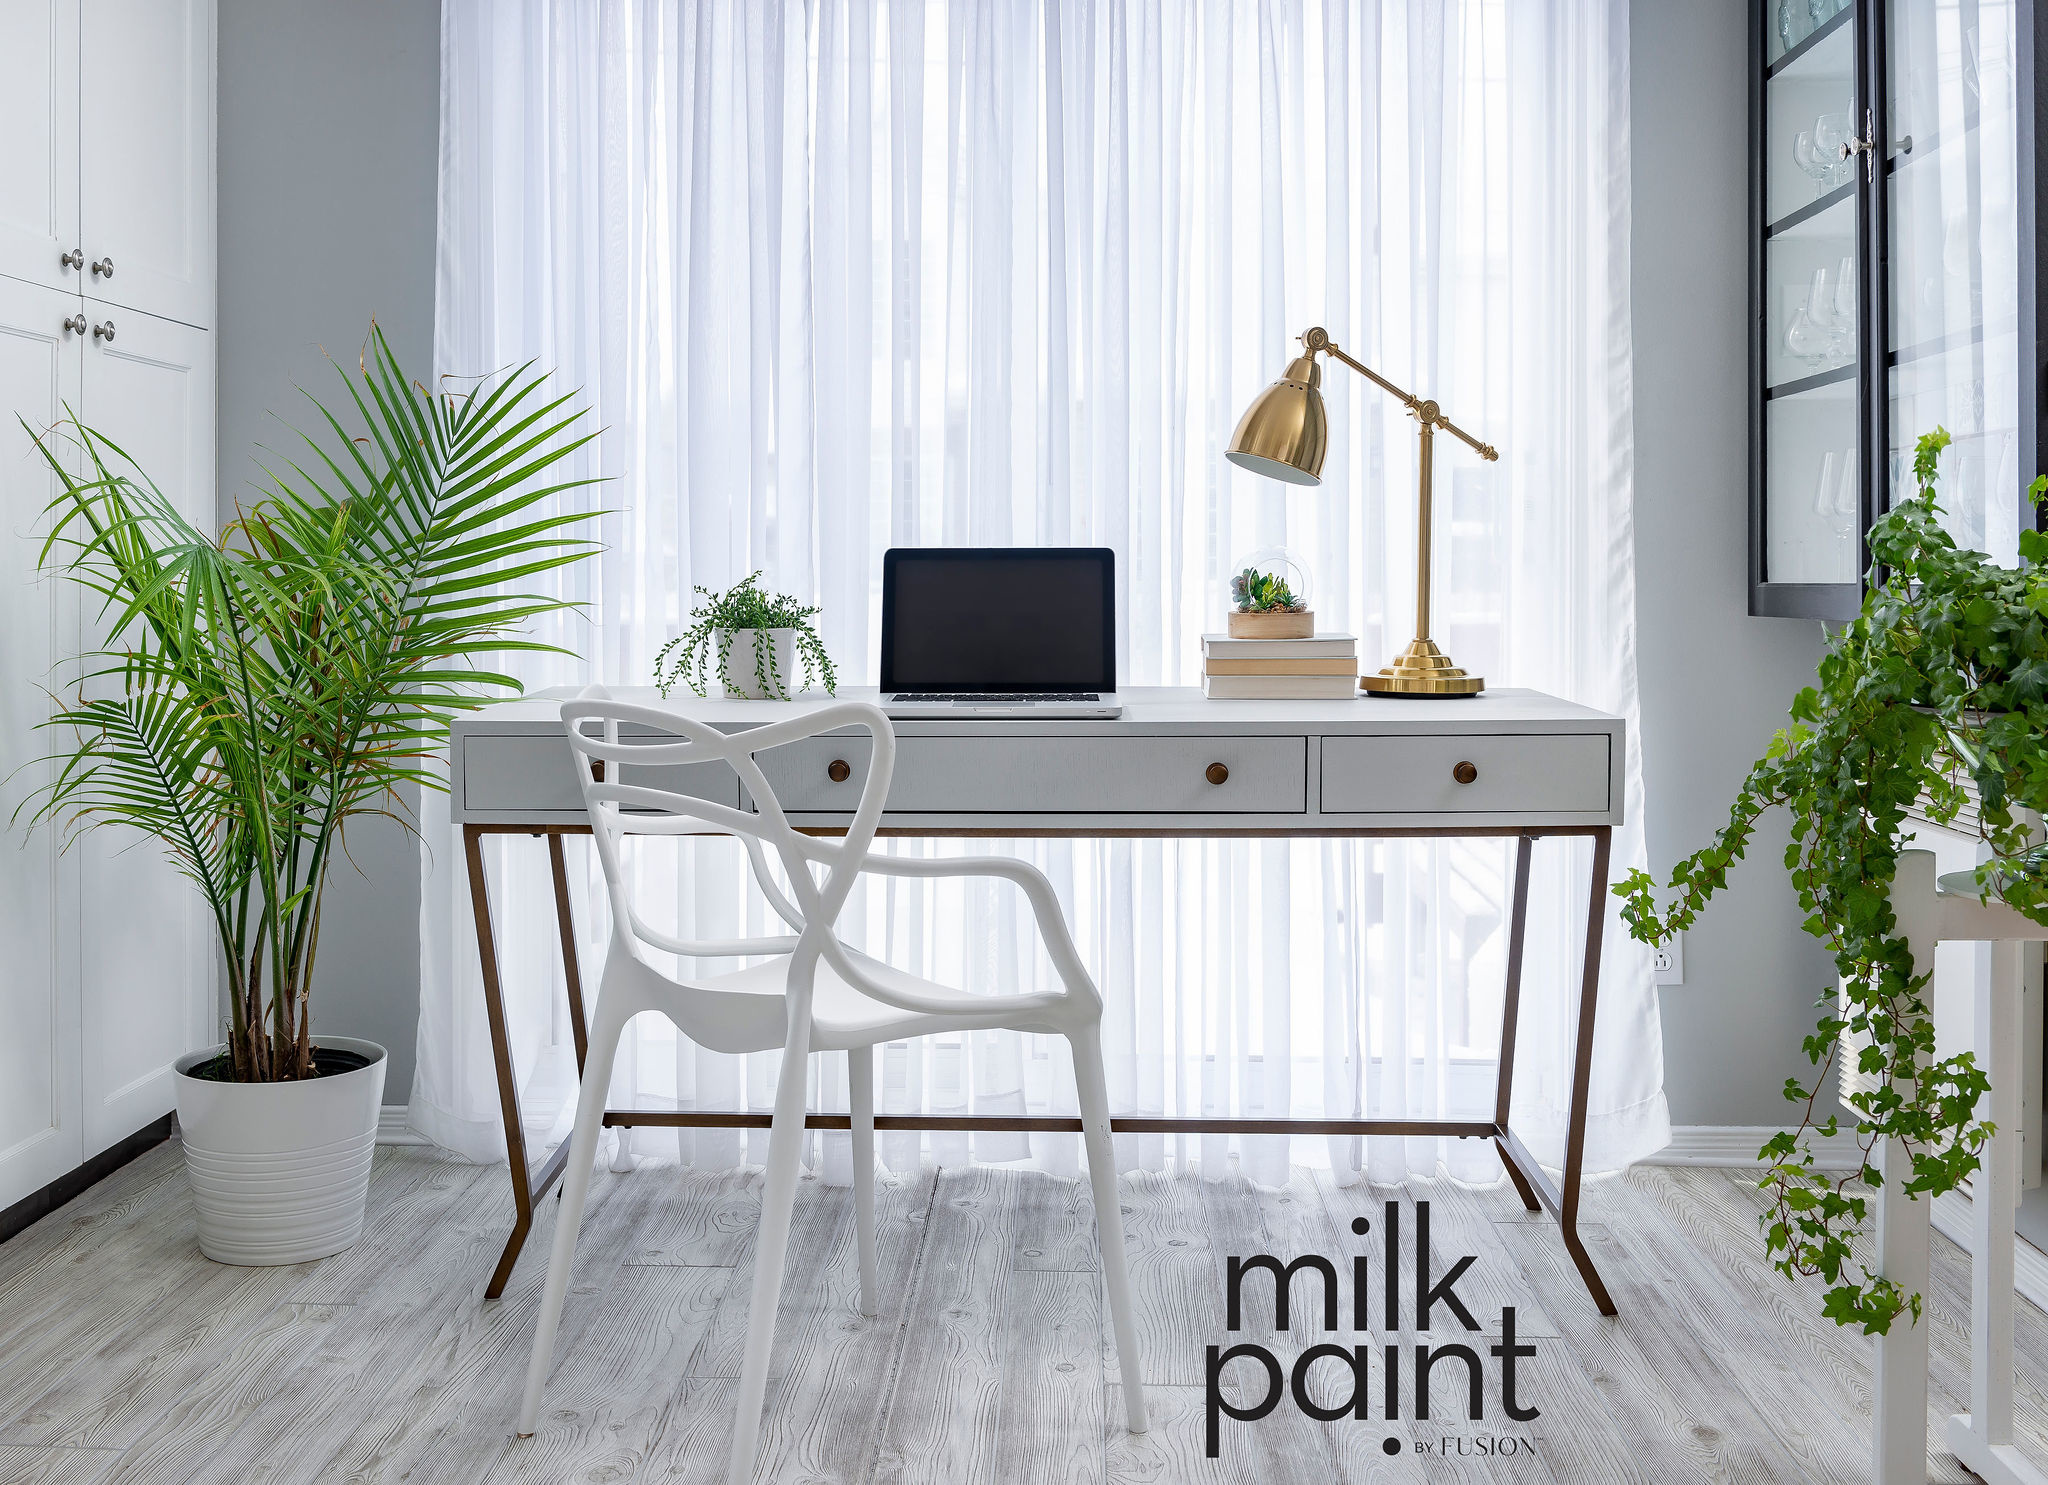 Fusion Mineral Paint Fusion - Milk Paint - Silver Screen - 330gr